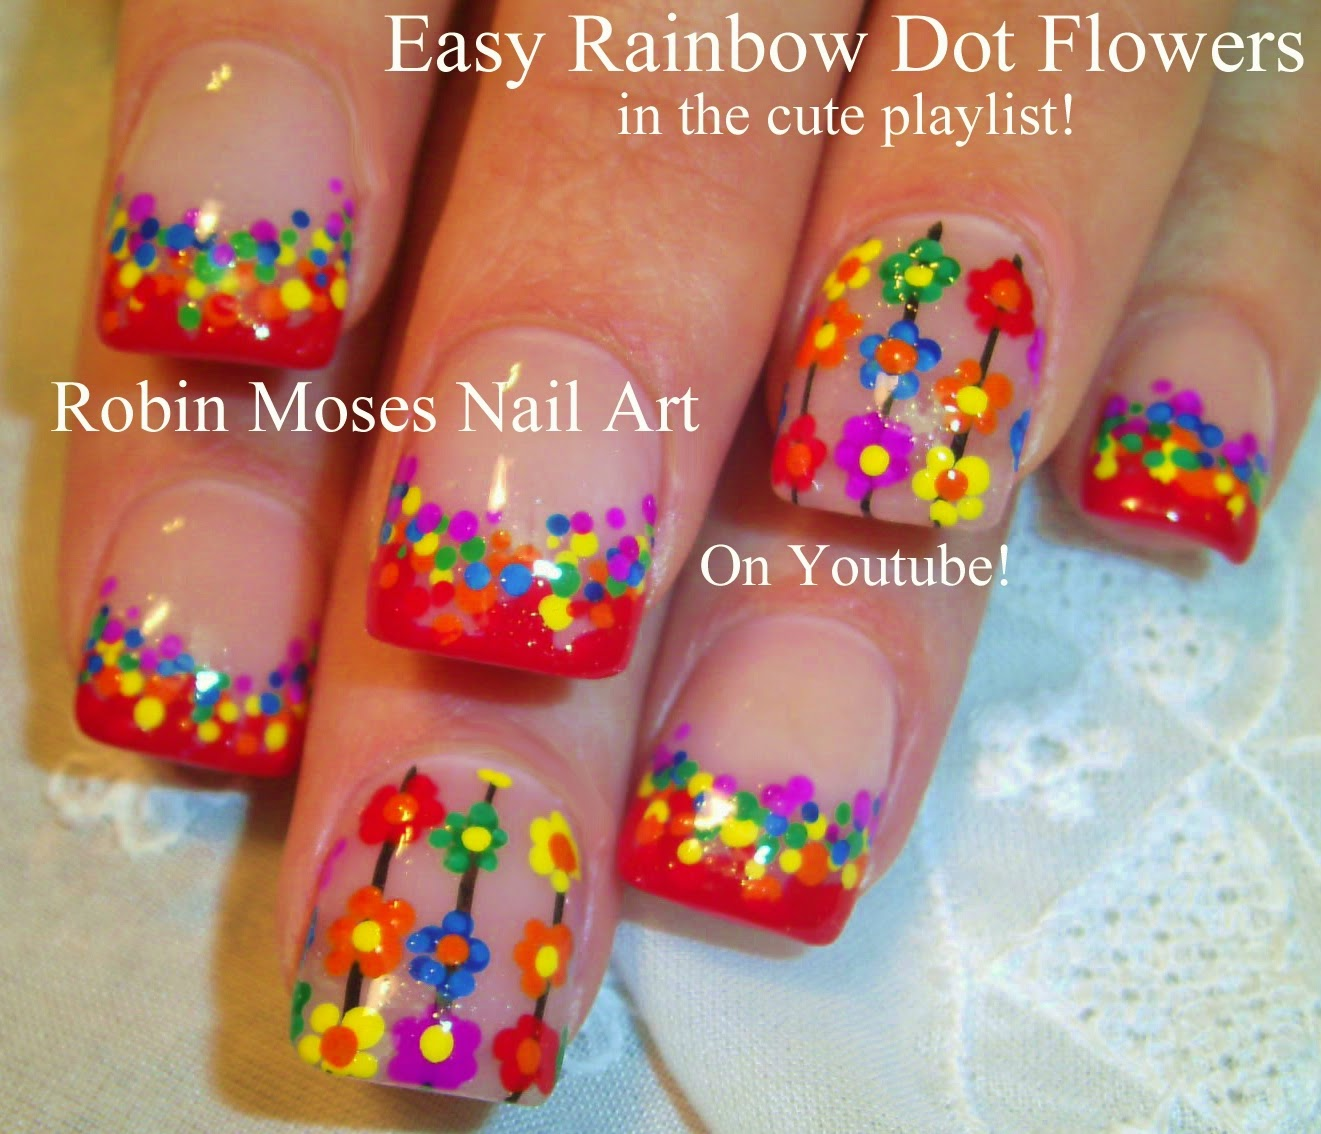 Robin Moses Nail Art February 2015